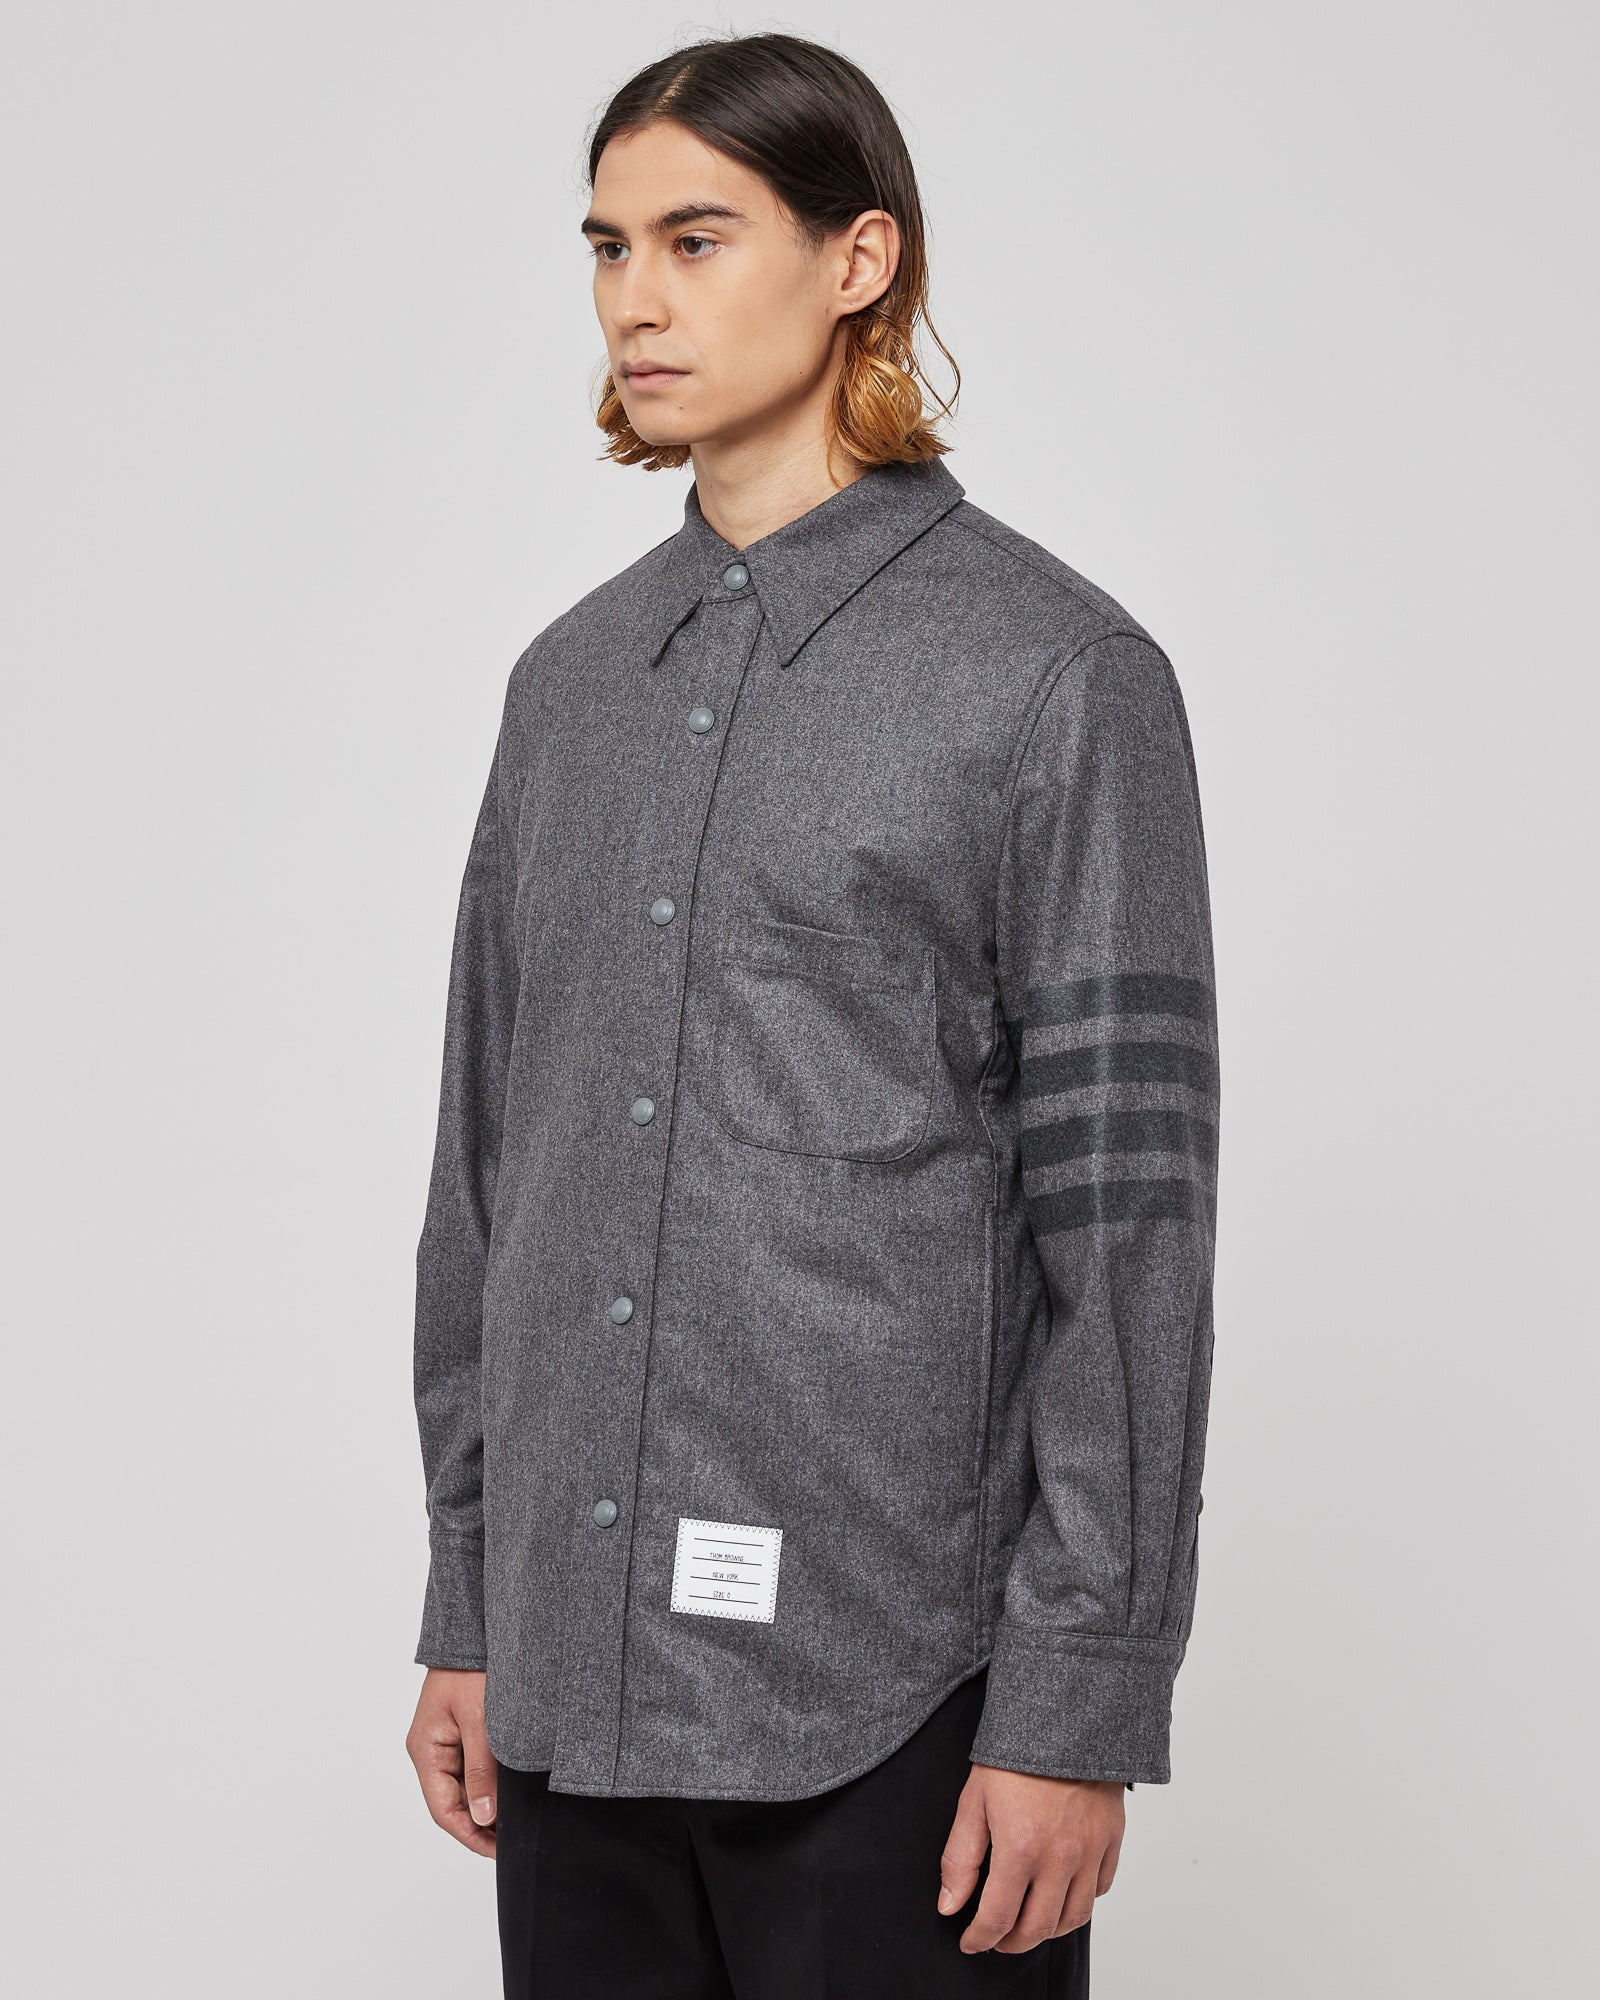 Snap Front Shirt in Gray